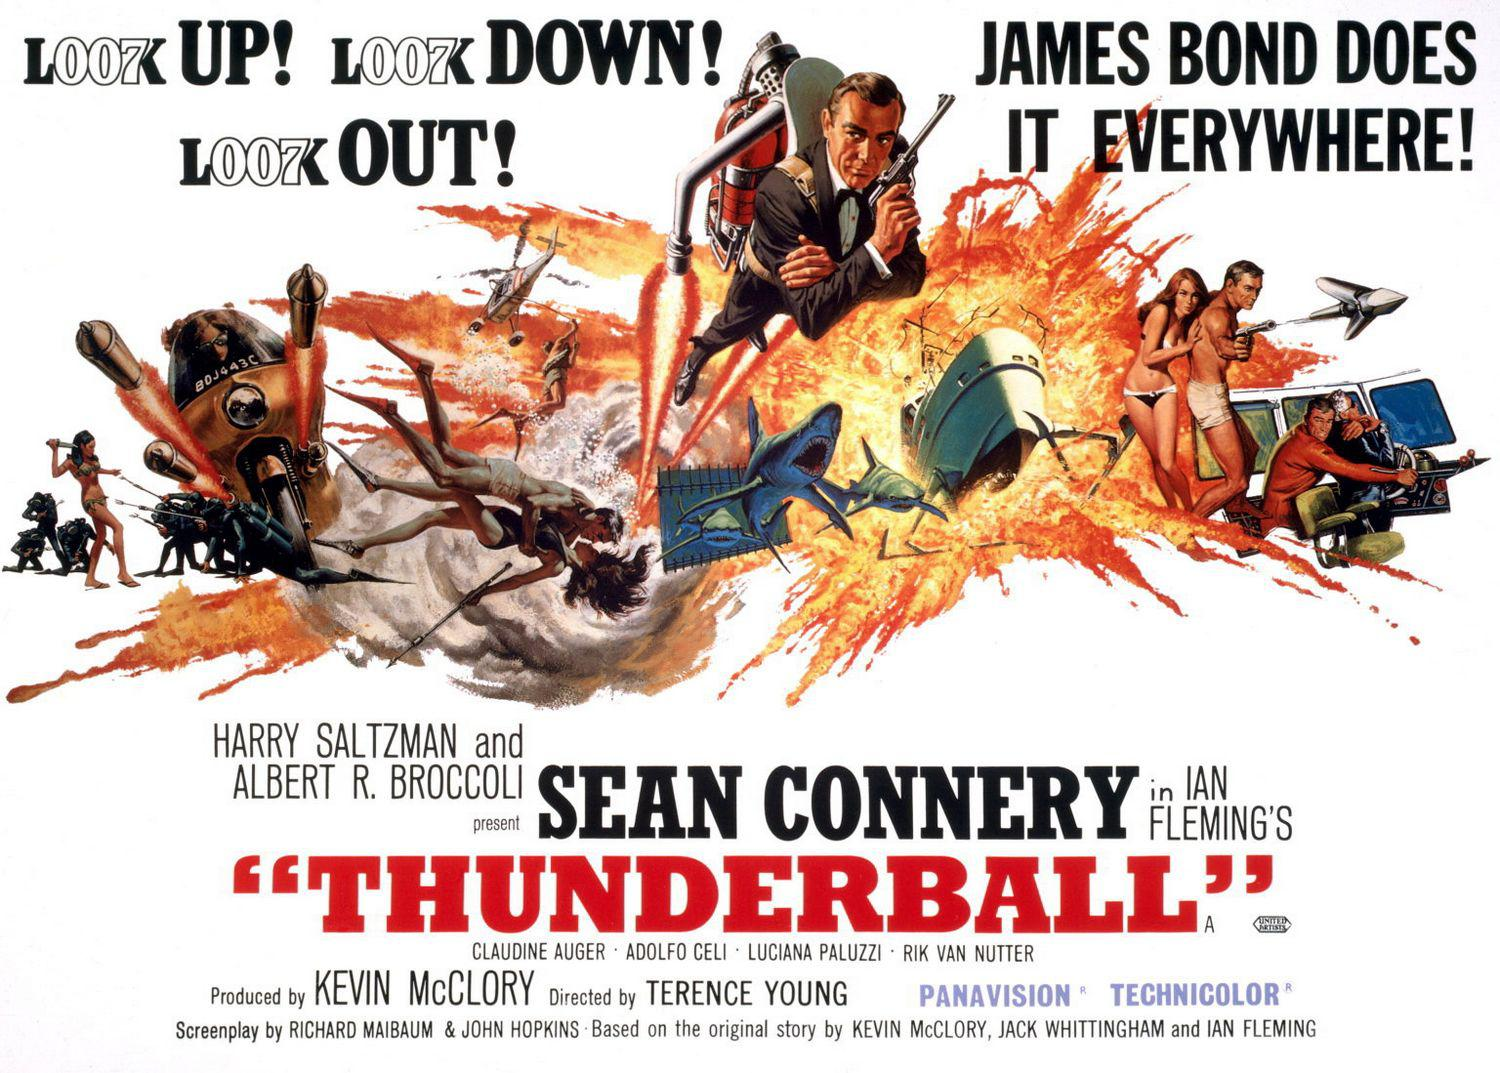 1965 - 007 Thunderball: Operazione Tuono - L007k up Loo7 down Look out